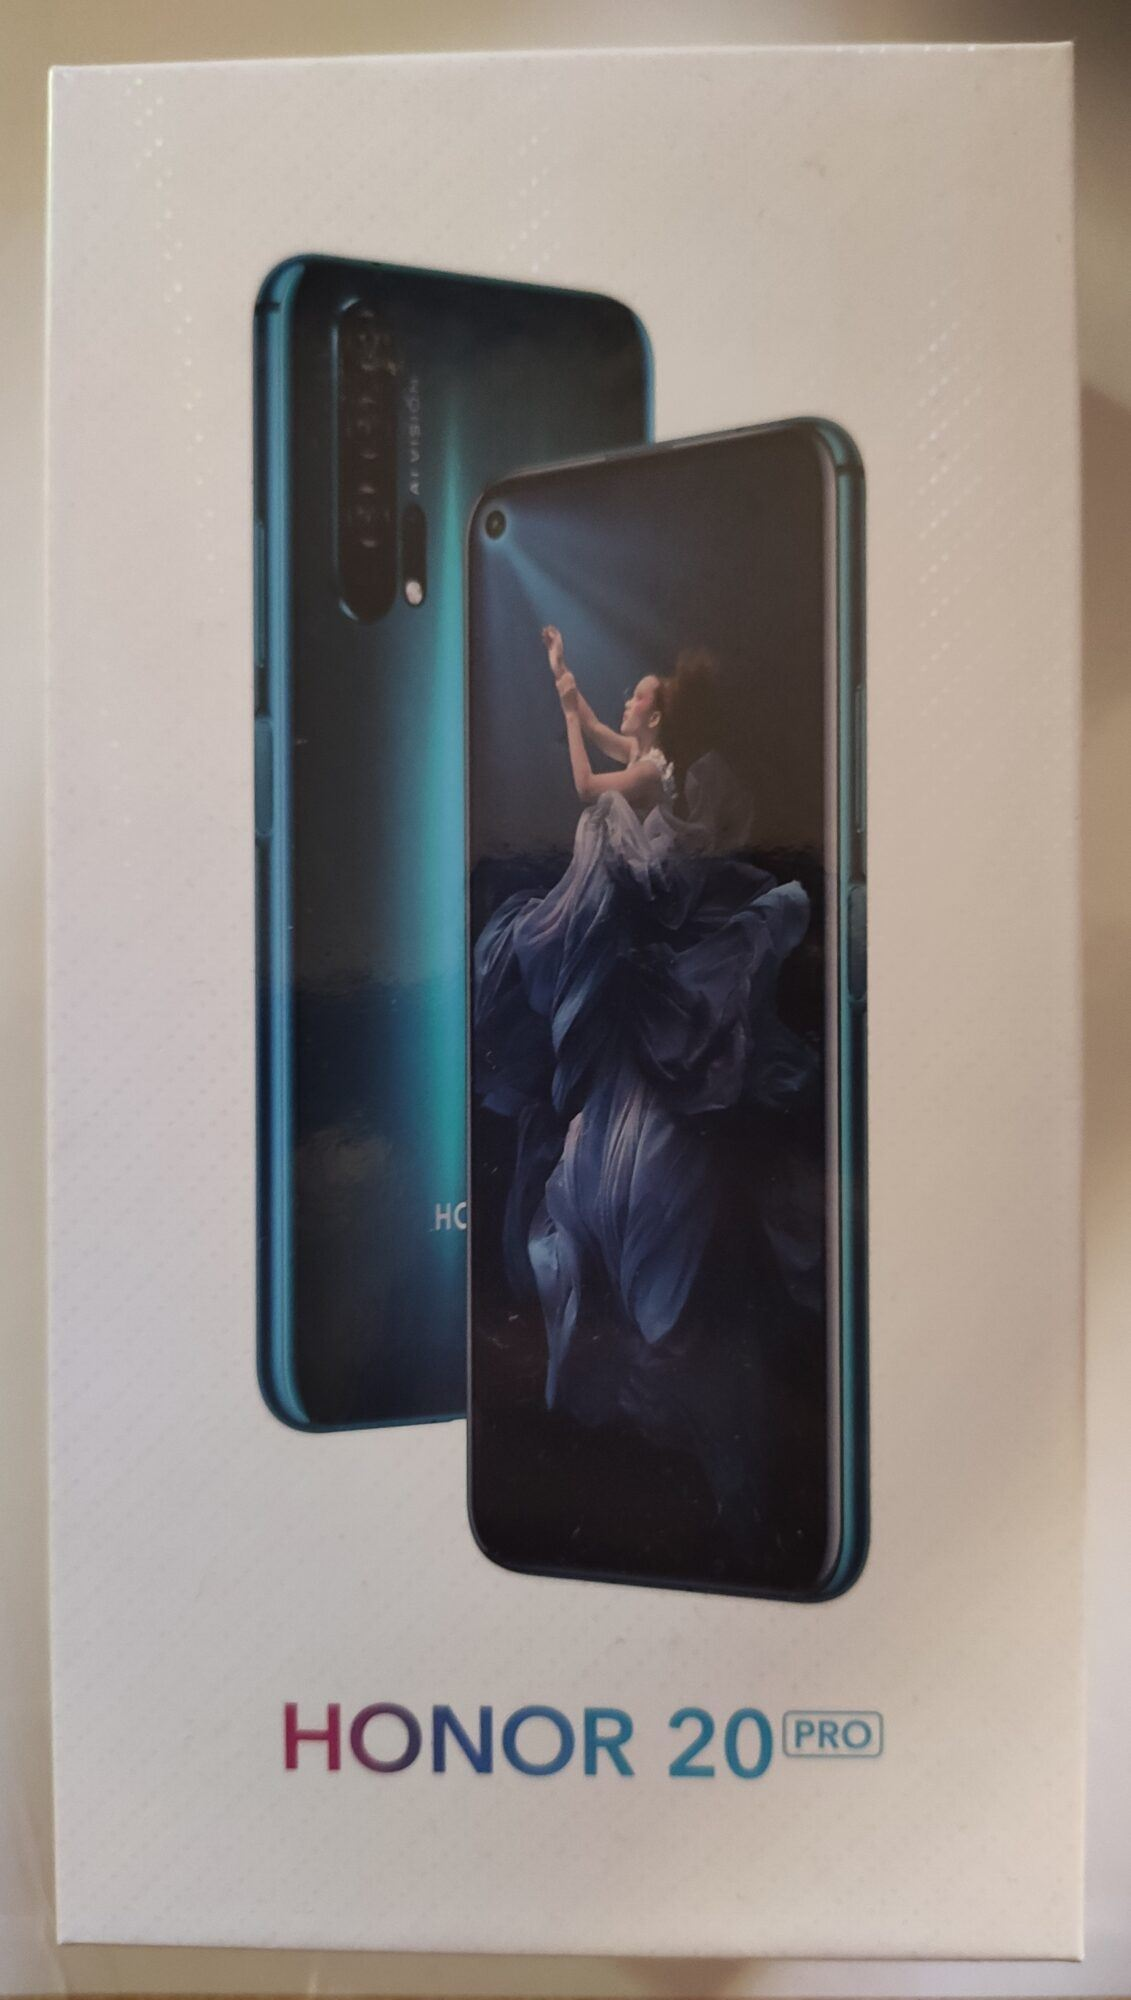 honor 20 pro capteurs 48 MP Android Magic UI dos Huawei reflets verre boîte